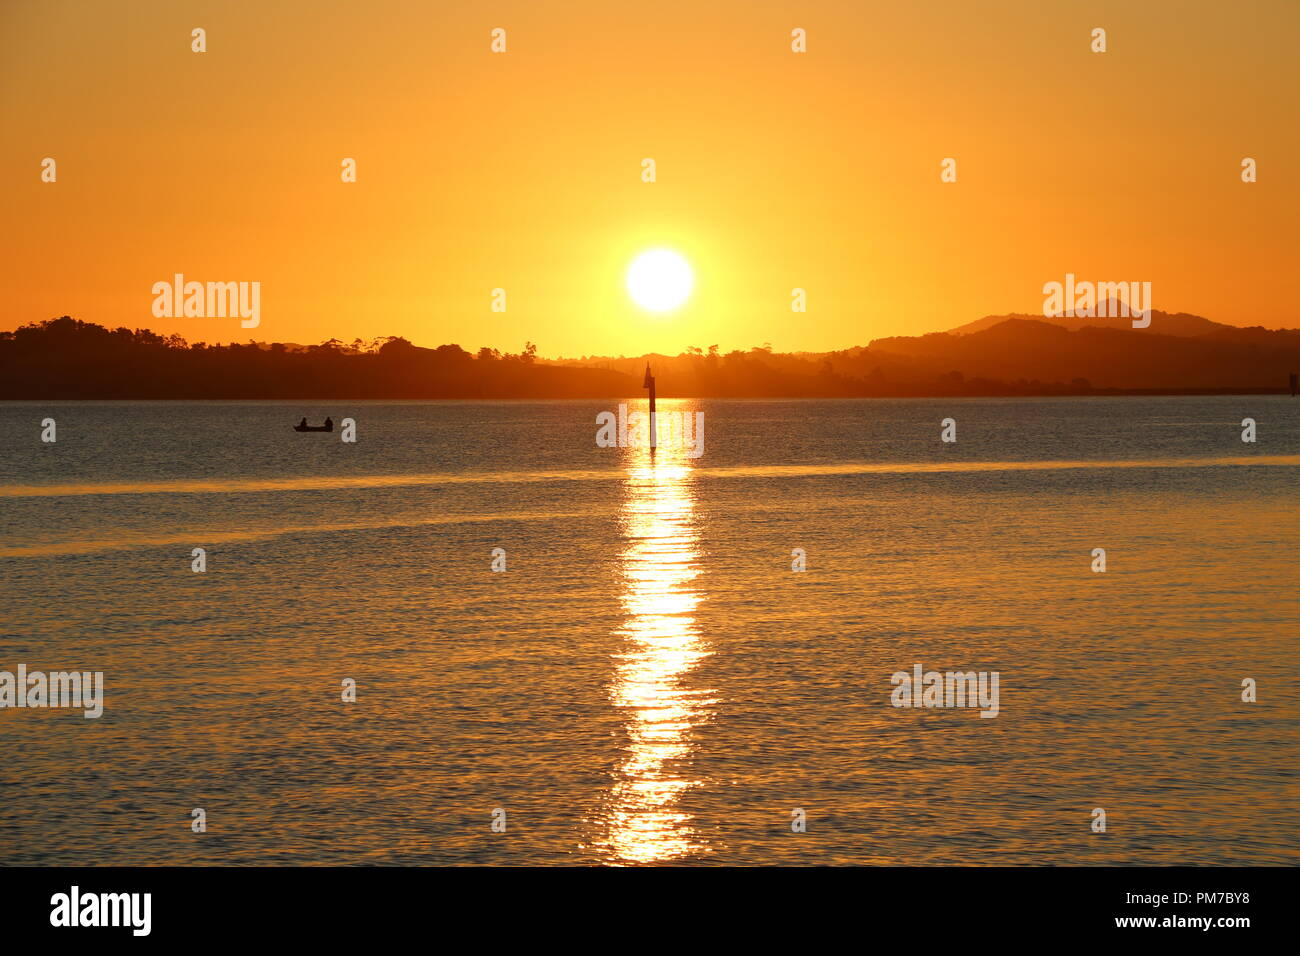 Fisching boat during sunset at Jacksons Bay - New Zealand Stock Photo